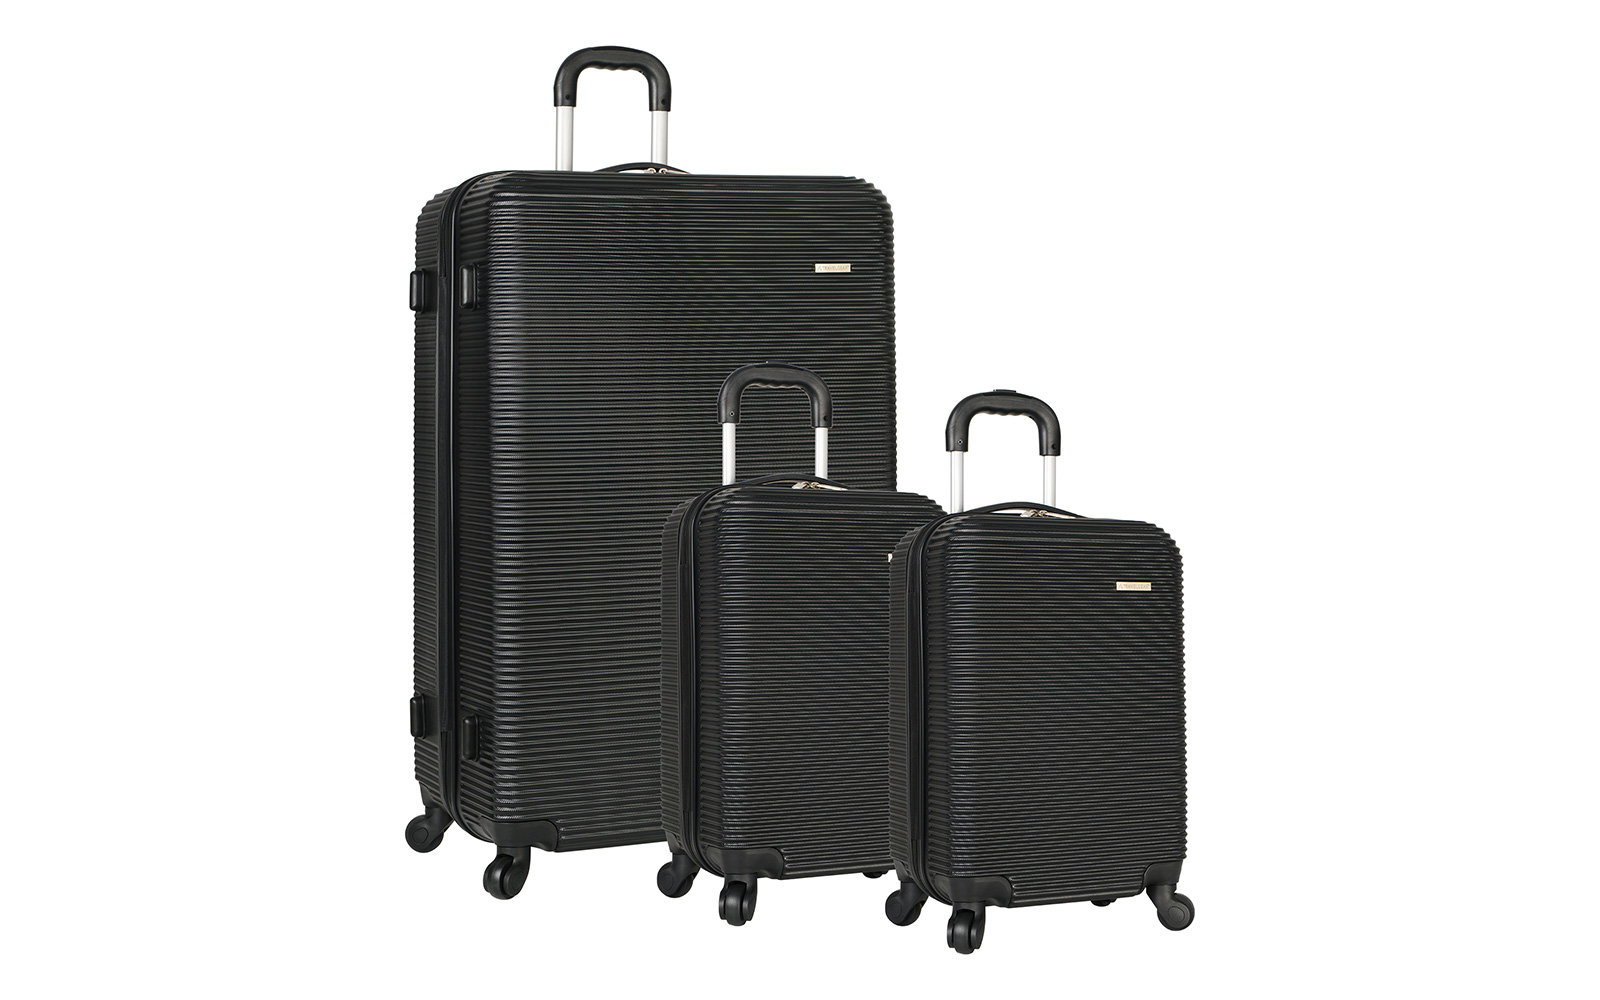 Travel Gear Hardside Spinner Luggage Set